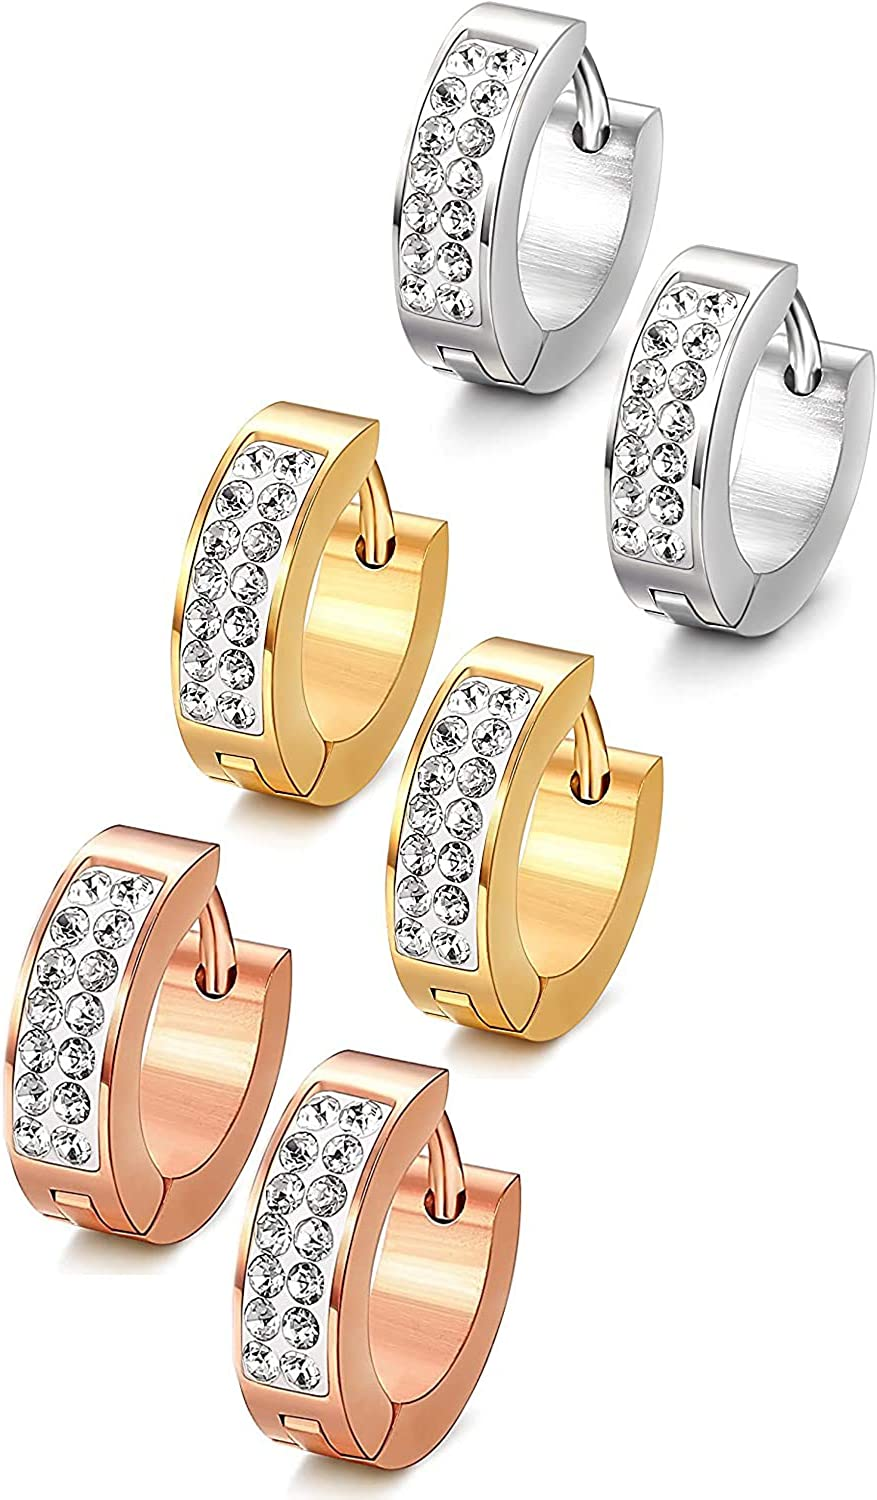 Jstyle Stainless Steel Womens Mens Hoop Earrings Huggie Earrings CZ Piercings 3 Pairs 18G